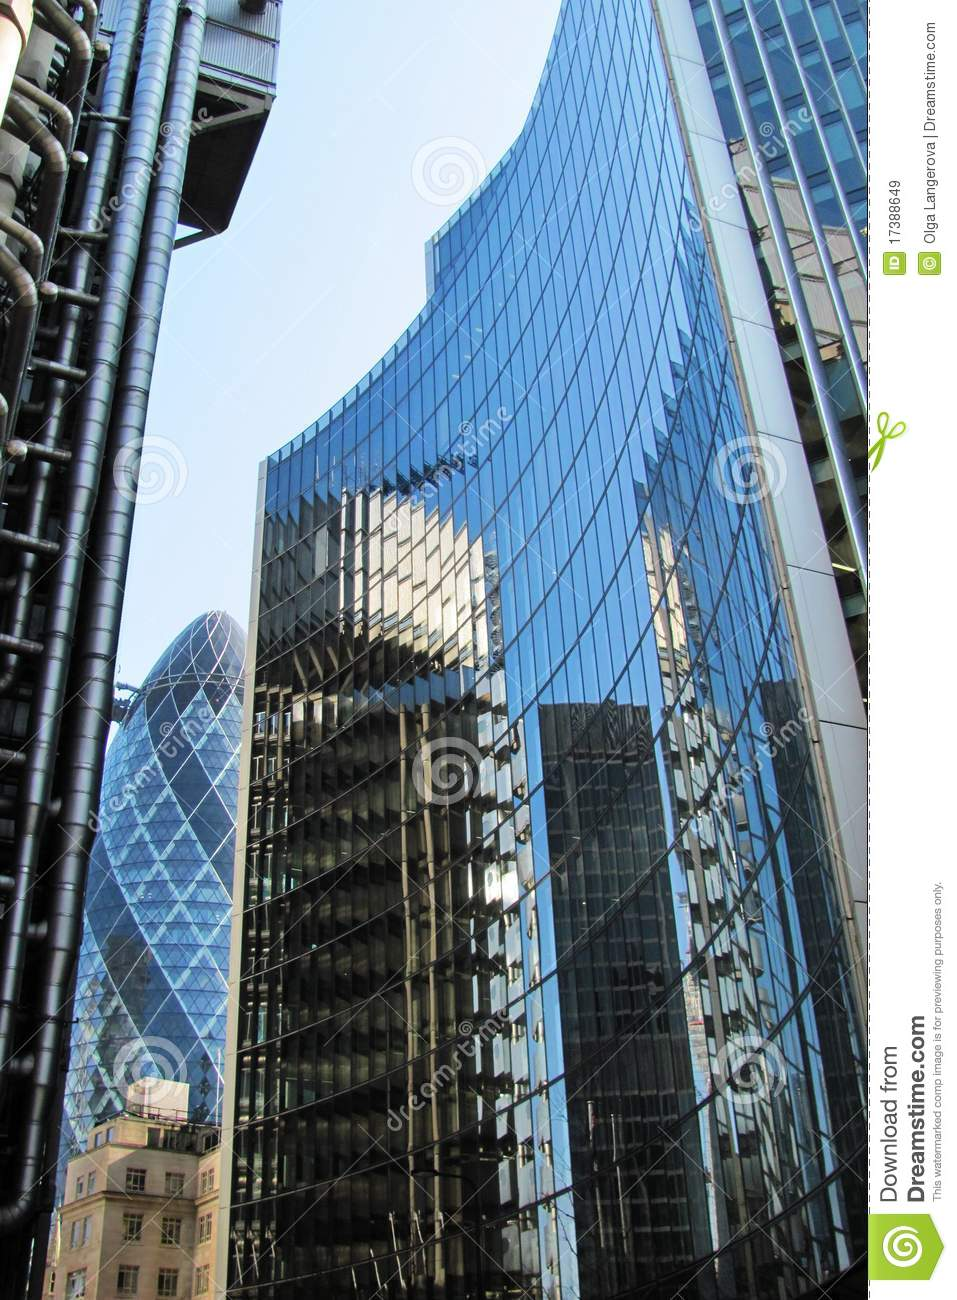 Modern Architecture In London Royalty Free Stock Images